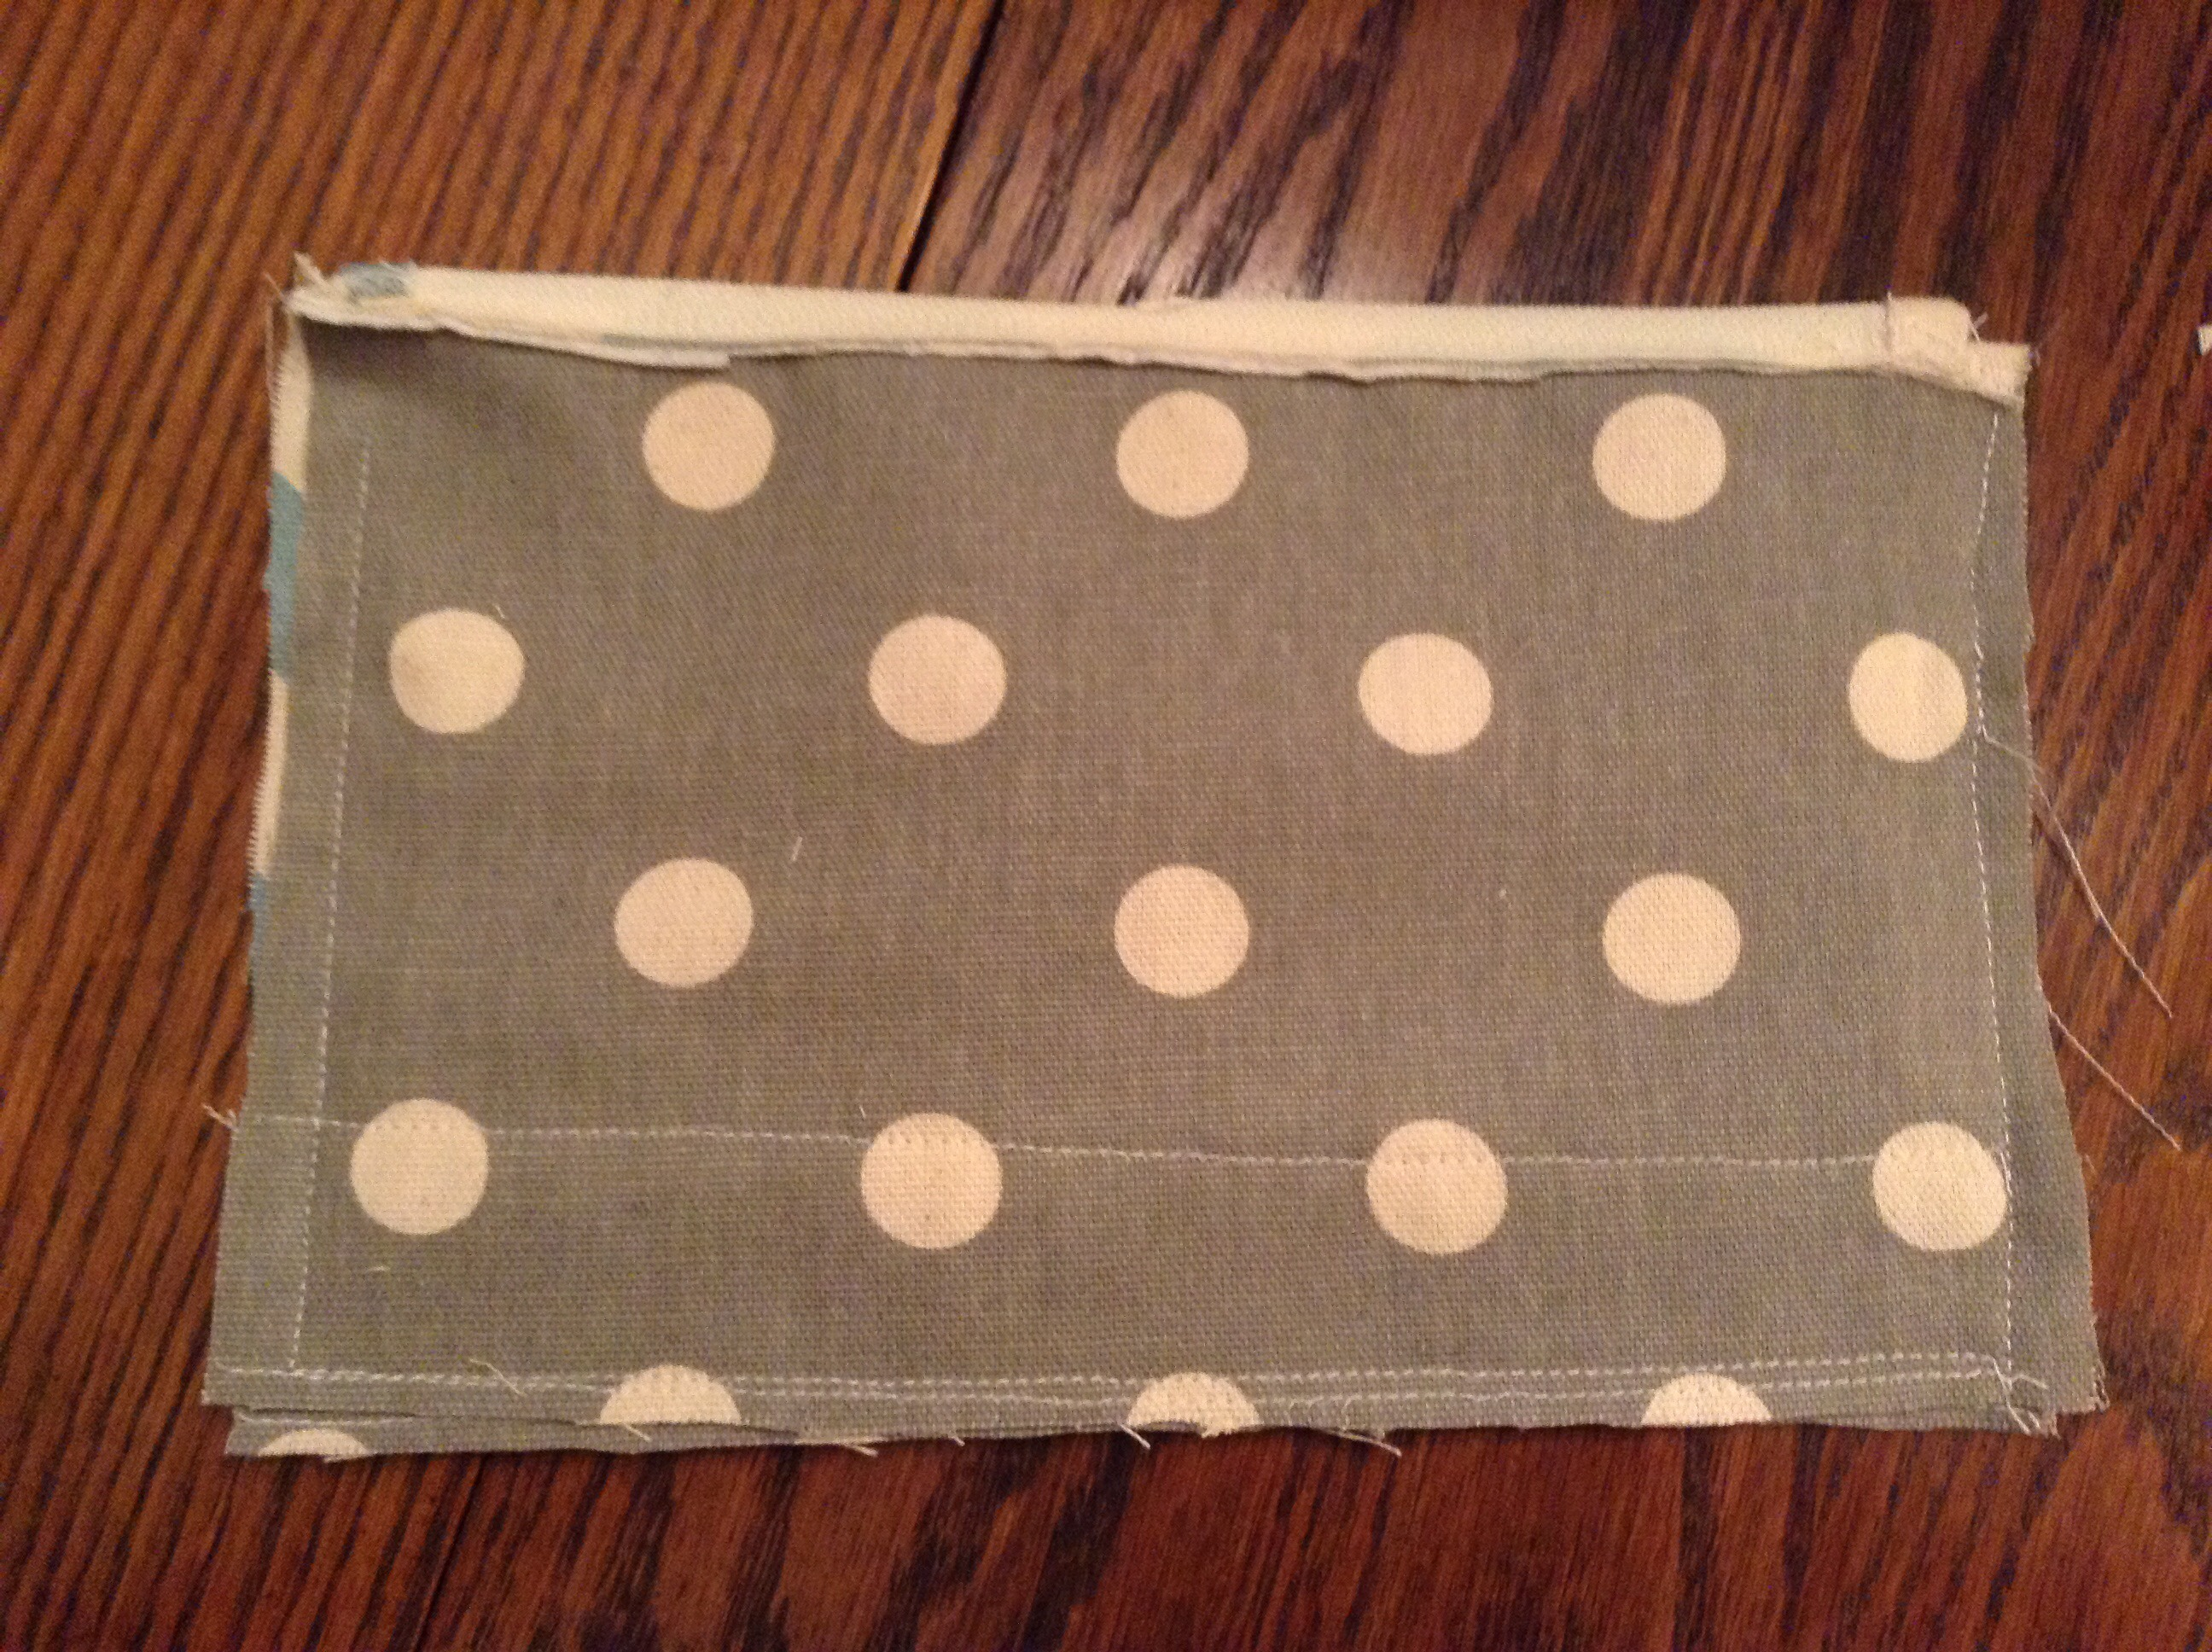 Picture of Sew the Bag Together